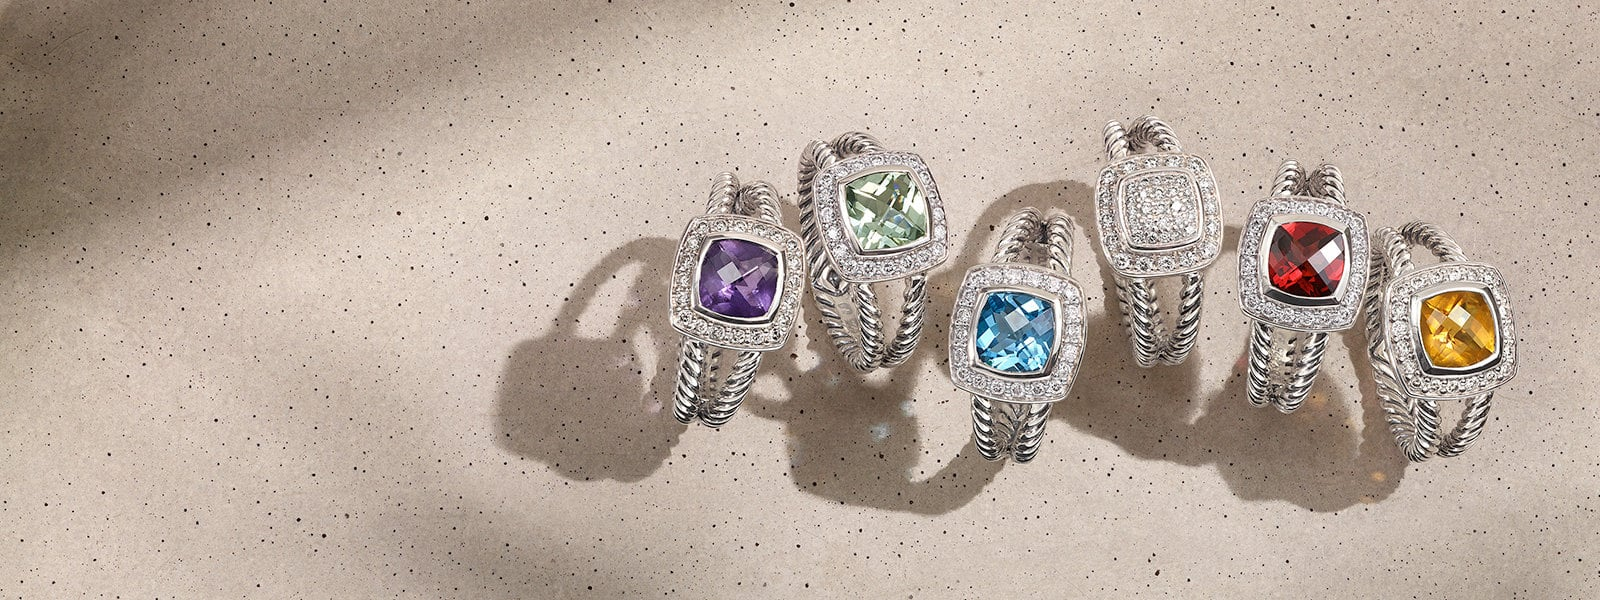 David Yurman Châtelaine® rings in sterling silver with diamonds or colored gemstones scattered on a light pink textured stone with long shadows.